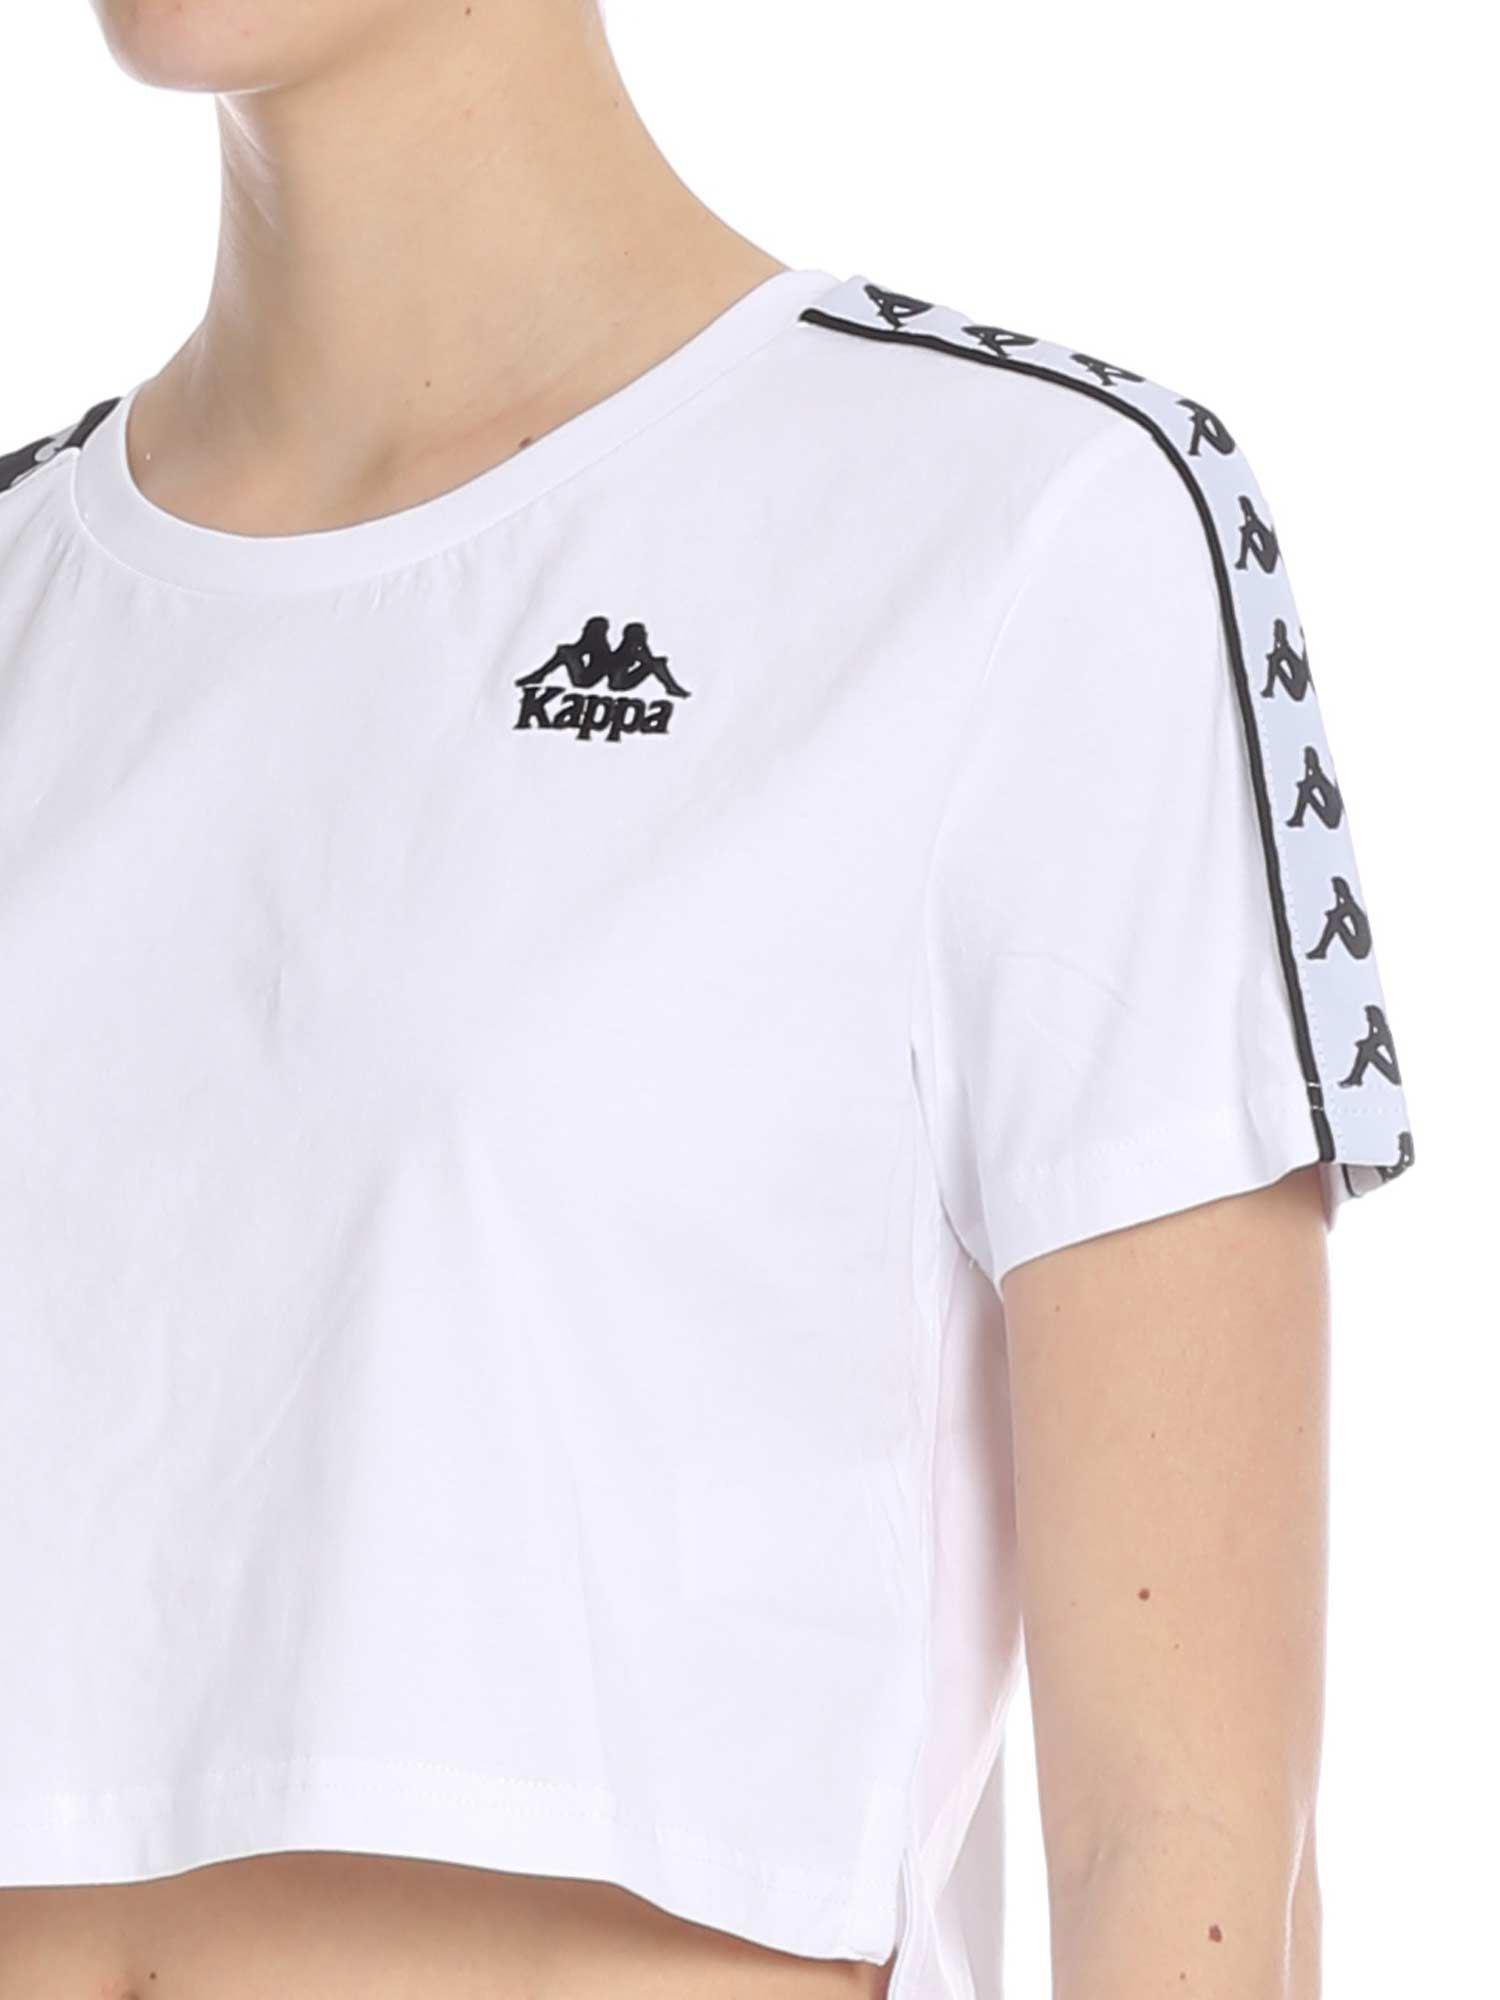 cedb44171fb48 Kappa - Banda Apua Crop T-shirt In White With Branded Bands - Lyst. View  fullscreen